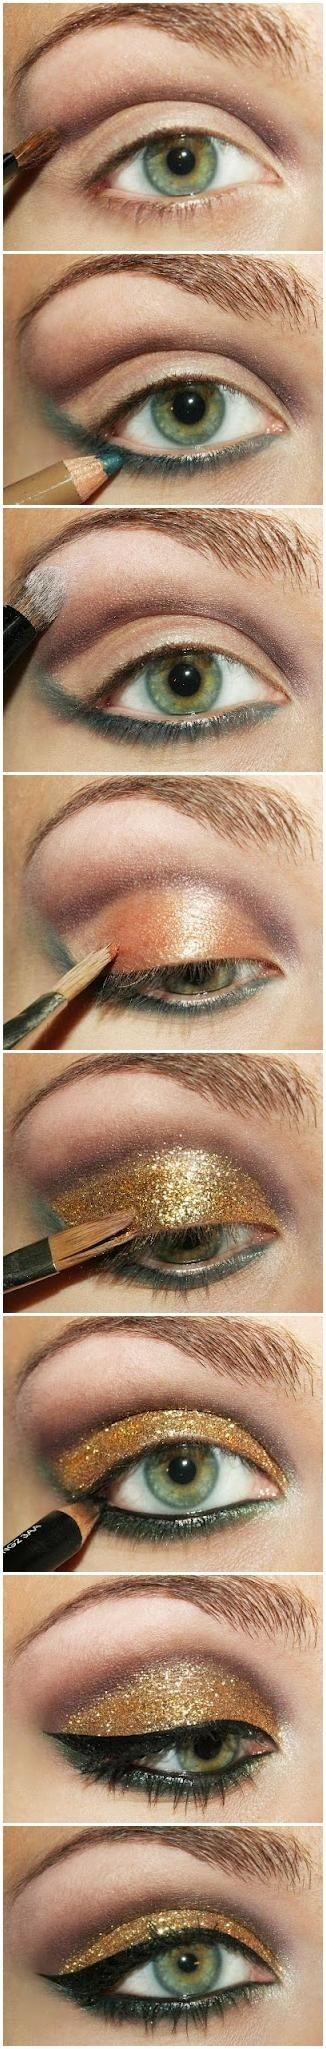 very sparkly eye makeup.